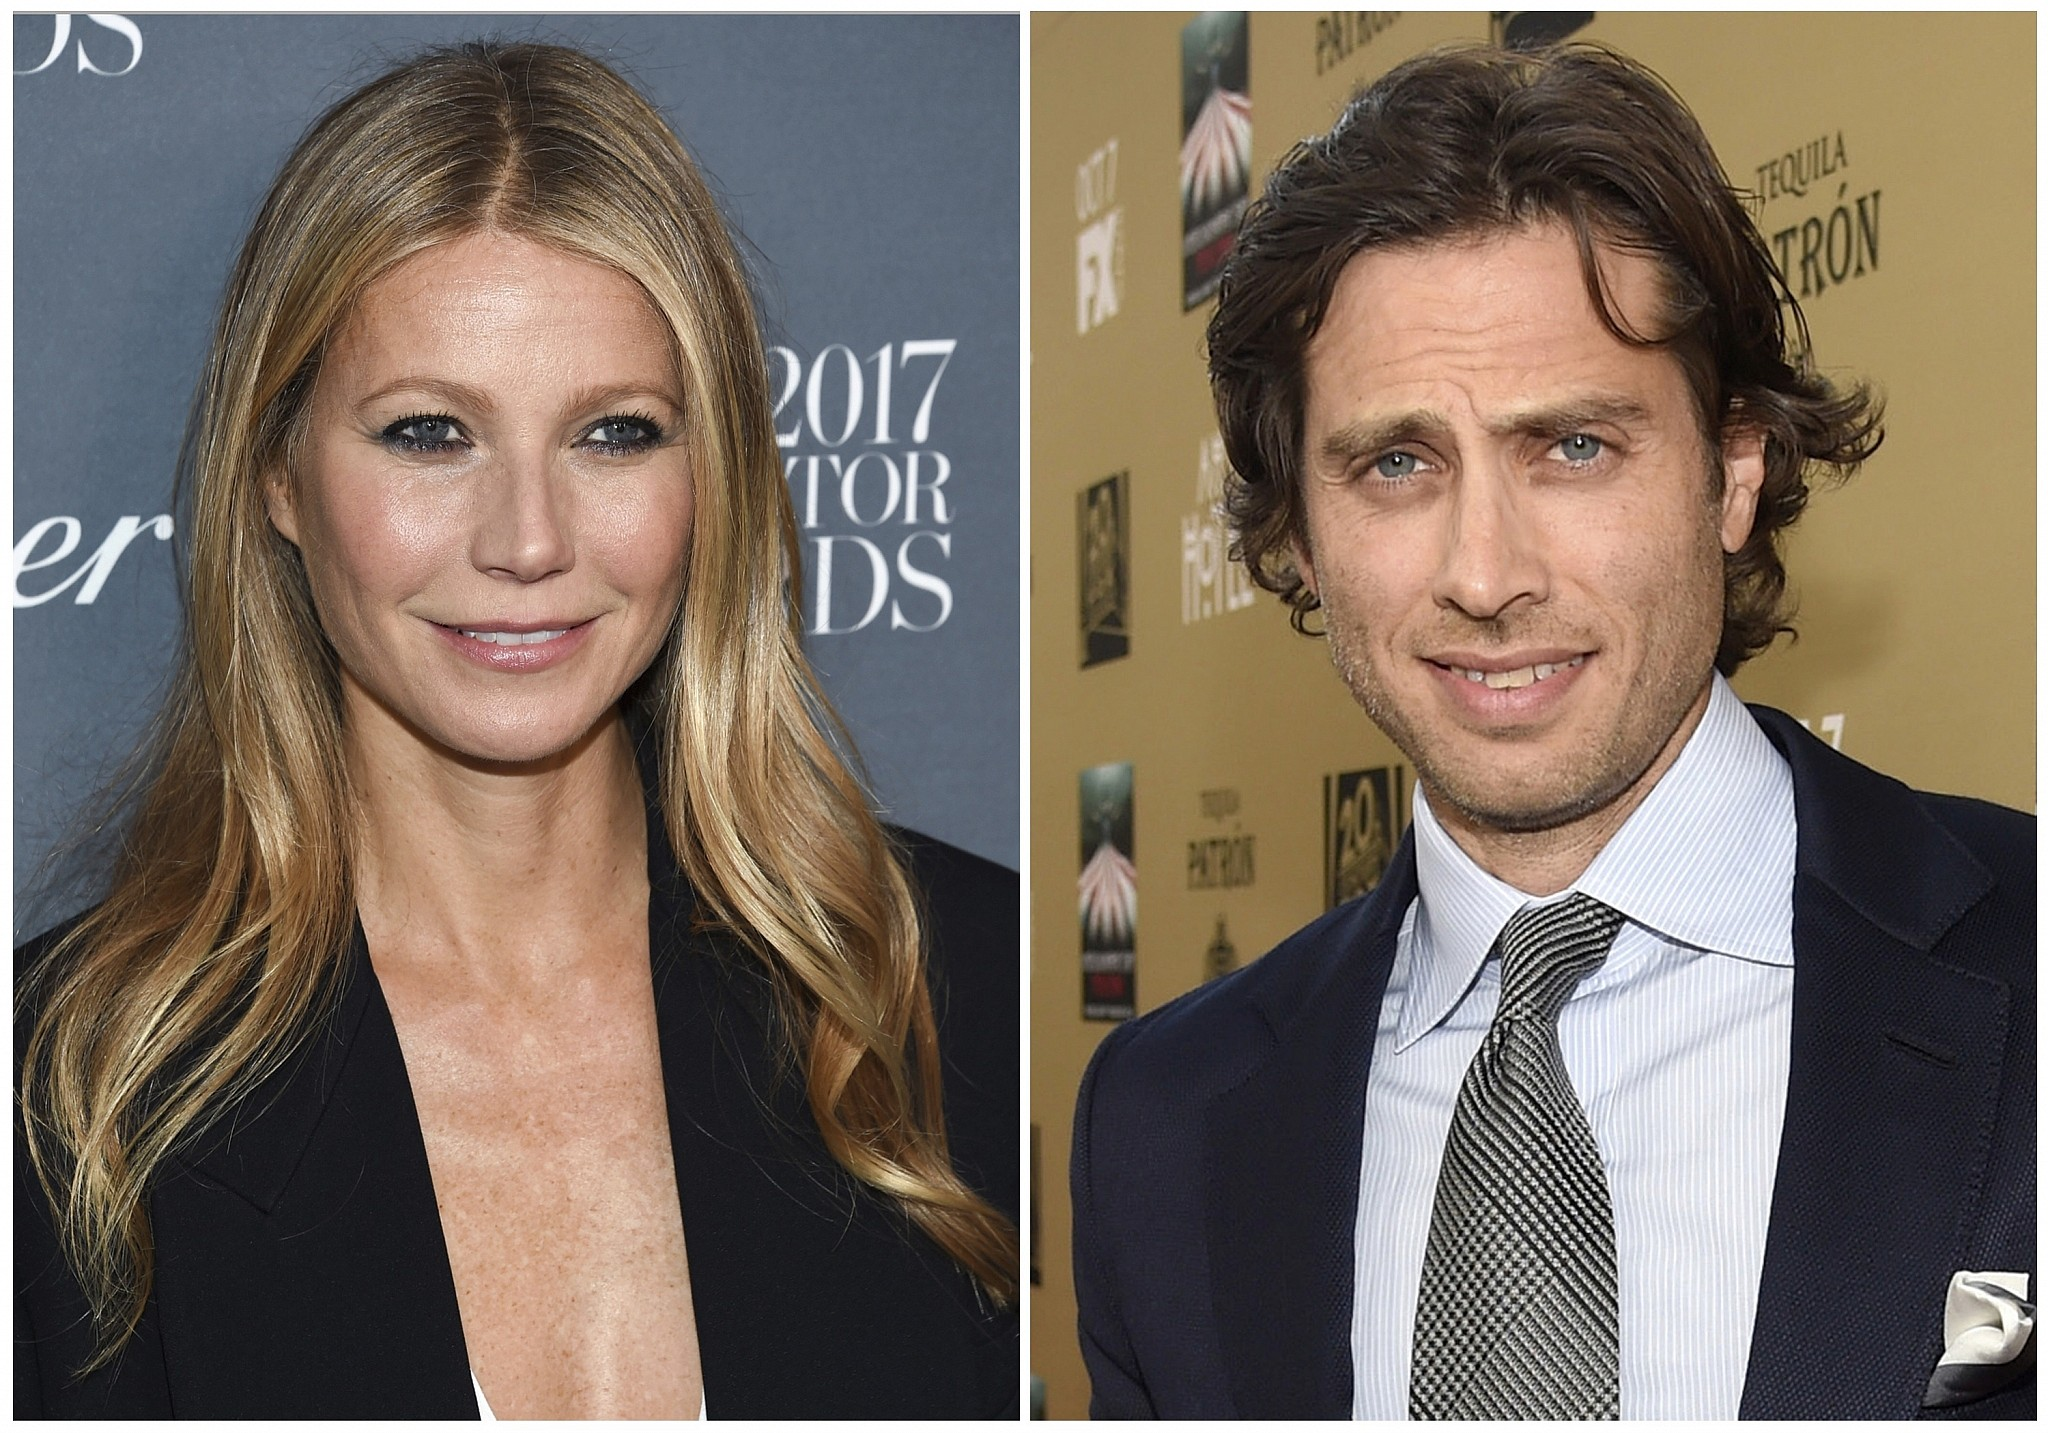 Gwyneth Paltrow Is Officially Engaged To Brad Falchuck